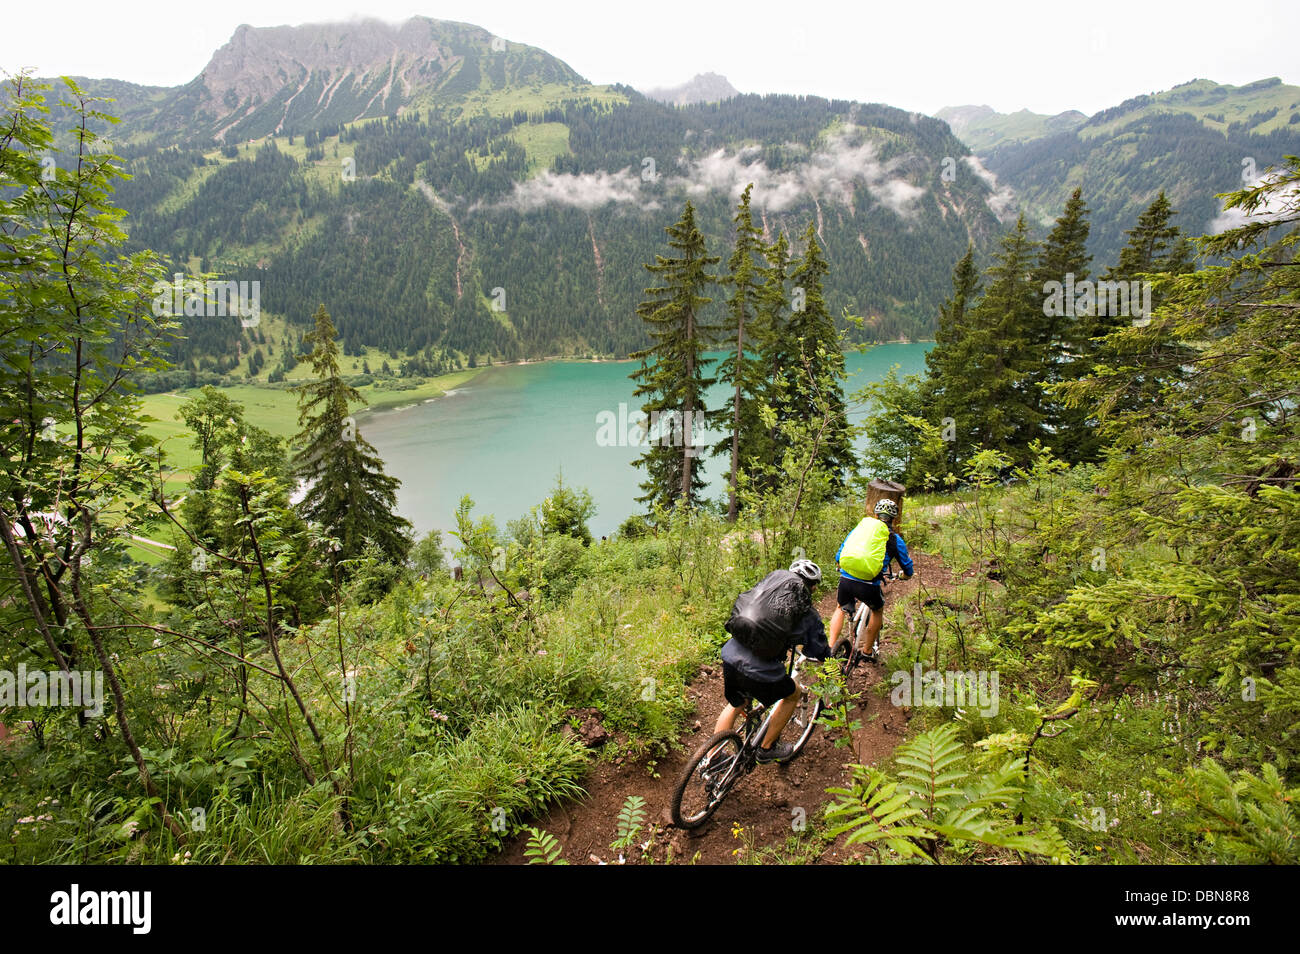 Two Mountain Bikers, Schattwald, Bavaria, Germany - Stock Image